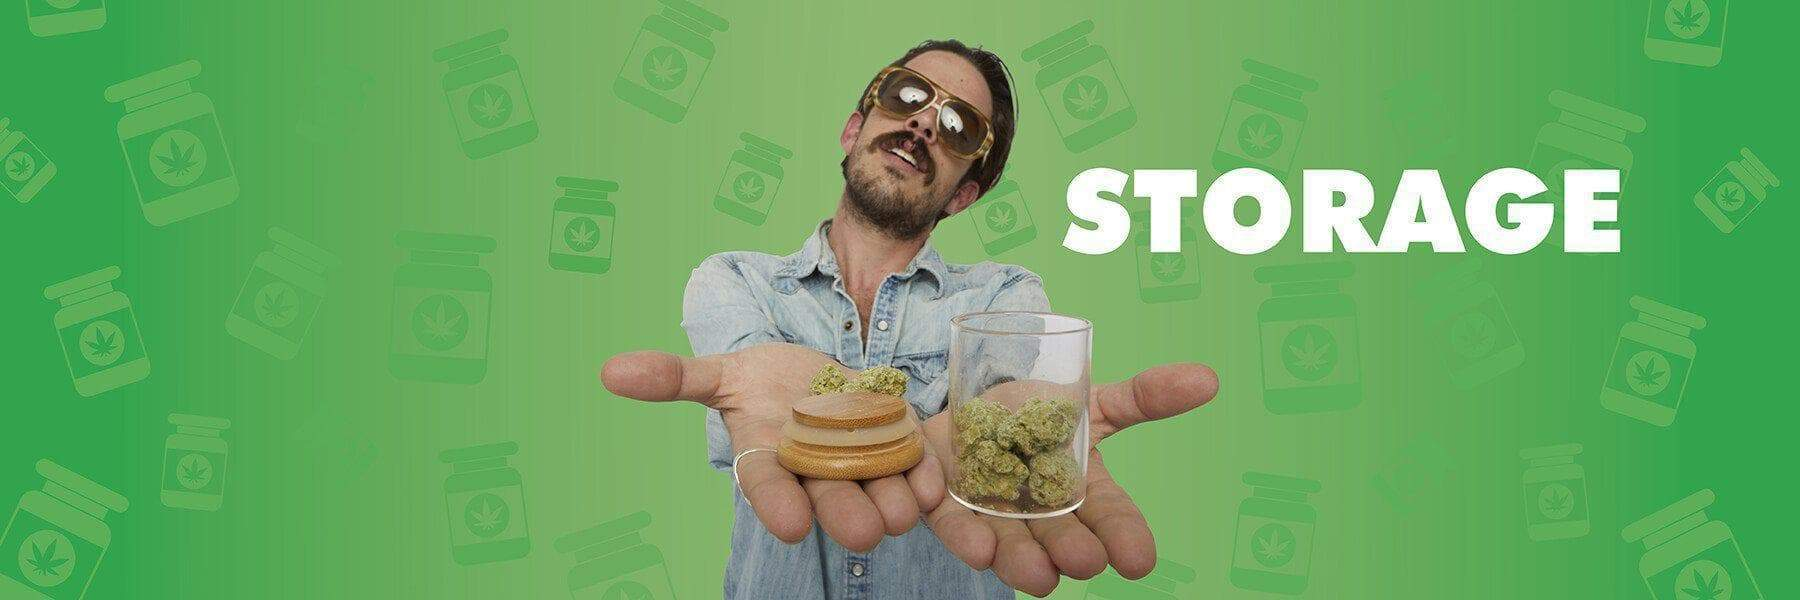 Stash Containers - Herb Containers & Silicone Containers for Storage